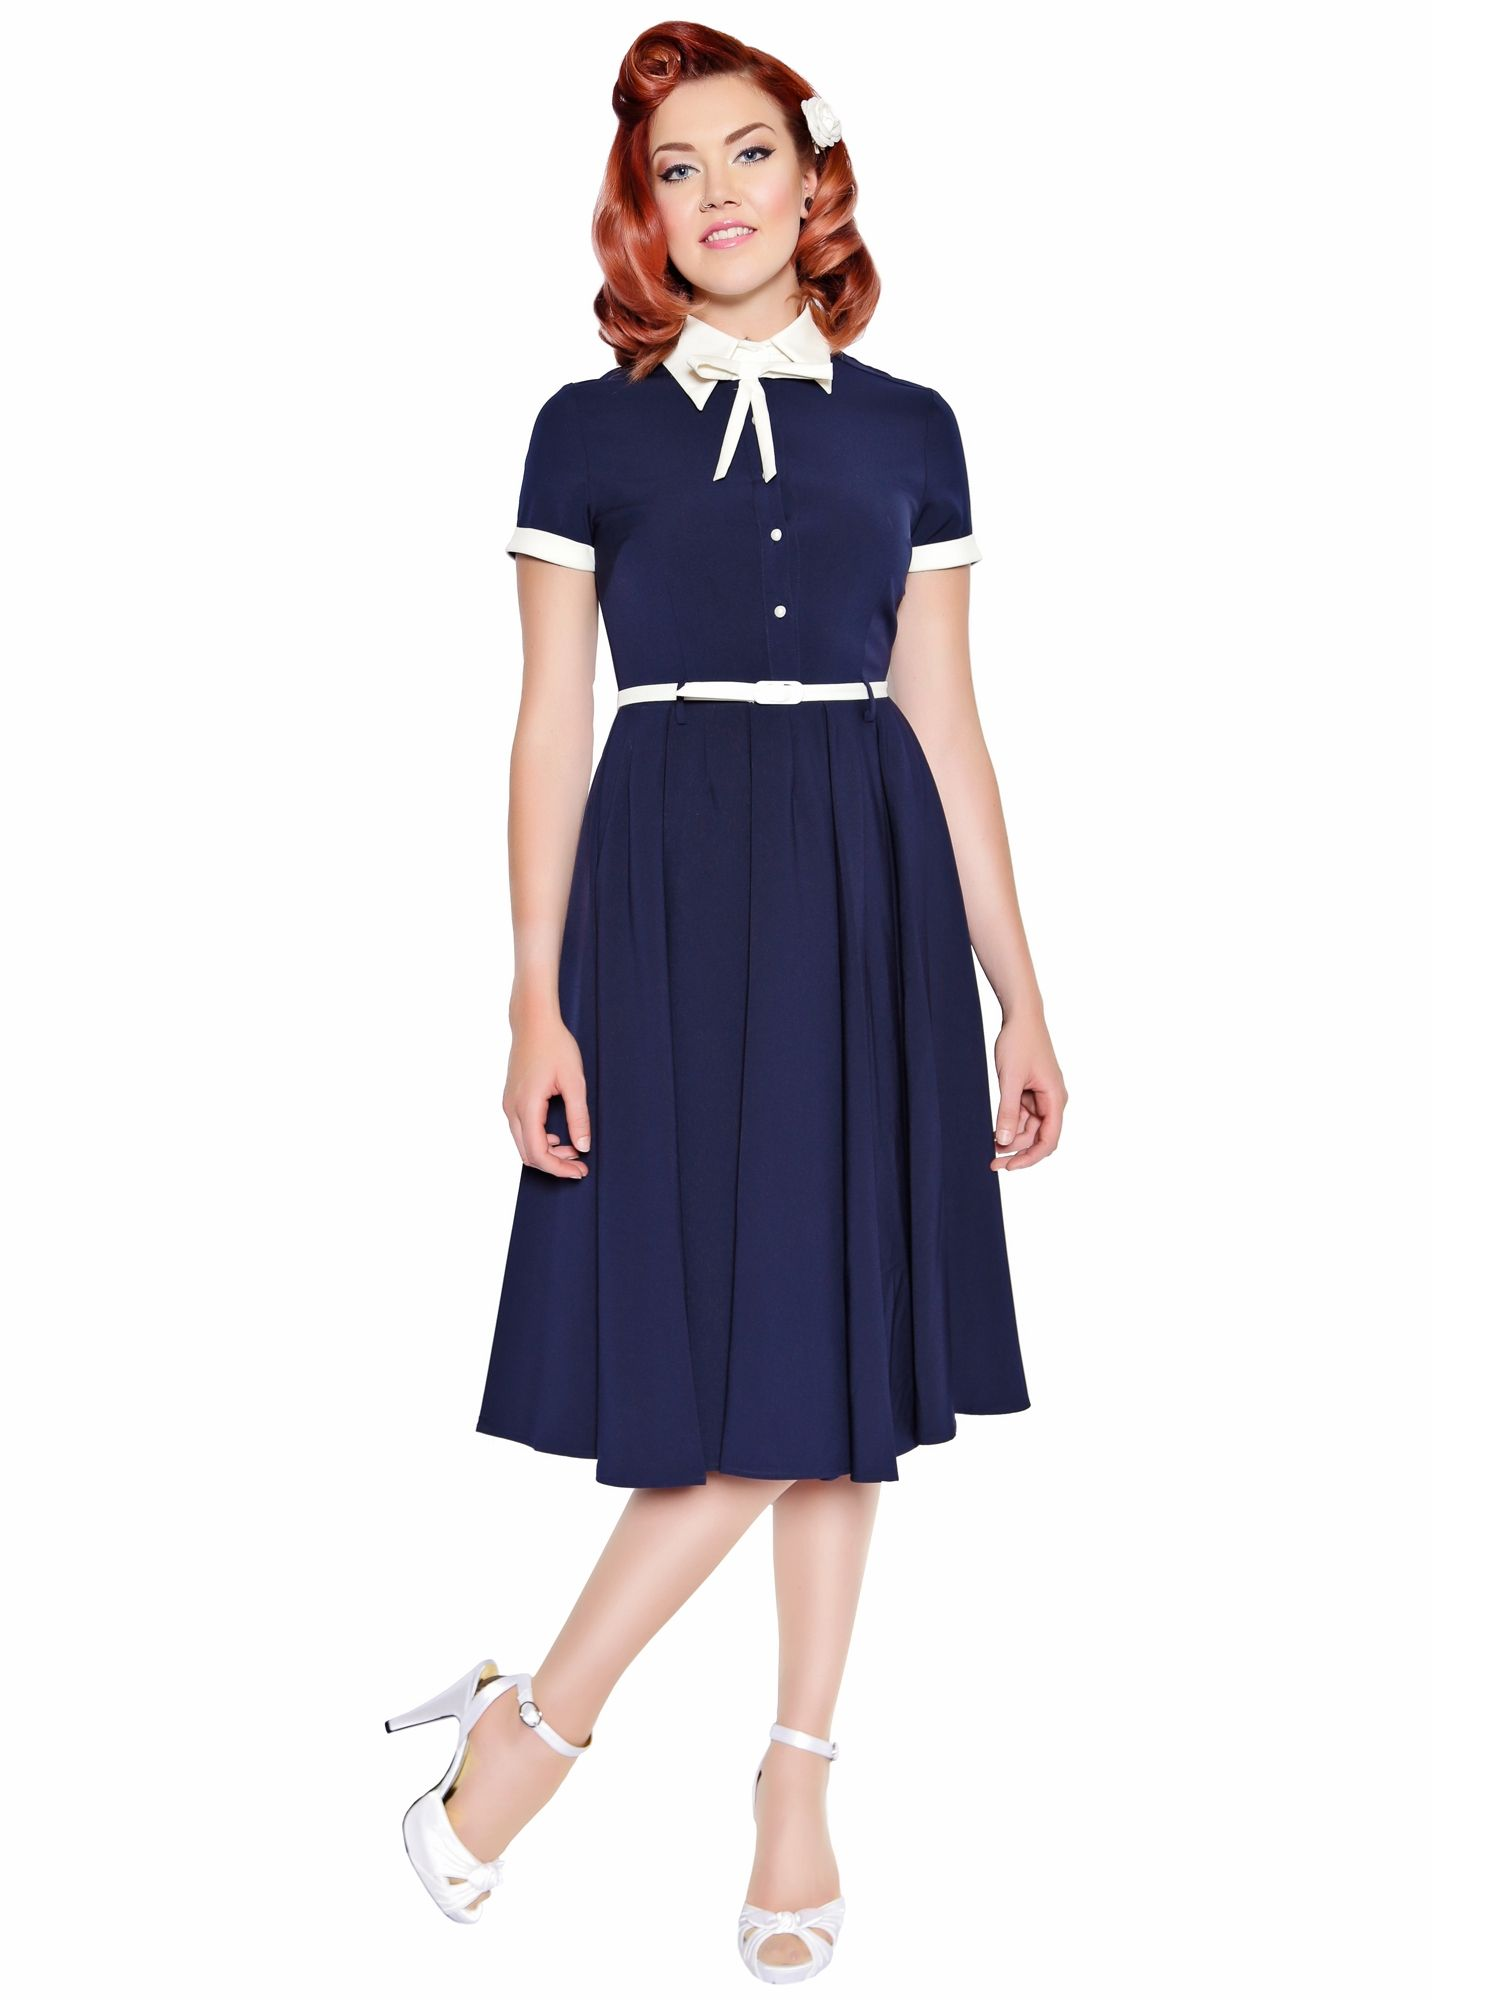 Cynthia doll navy blue short dress womenus fashion pinterest